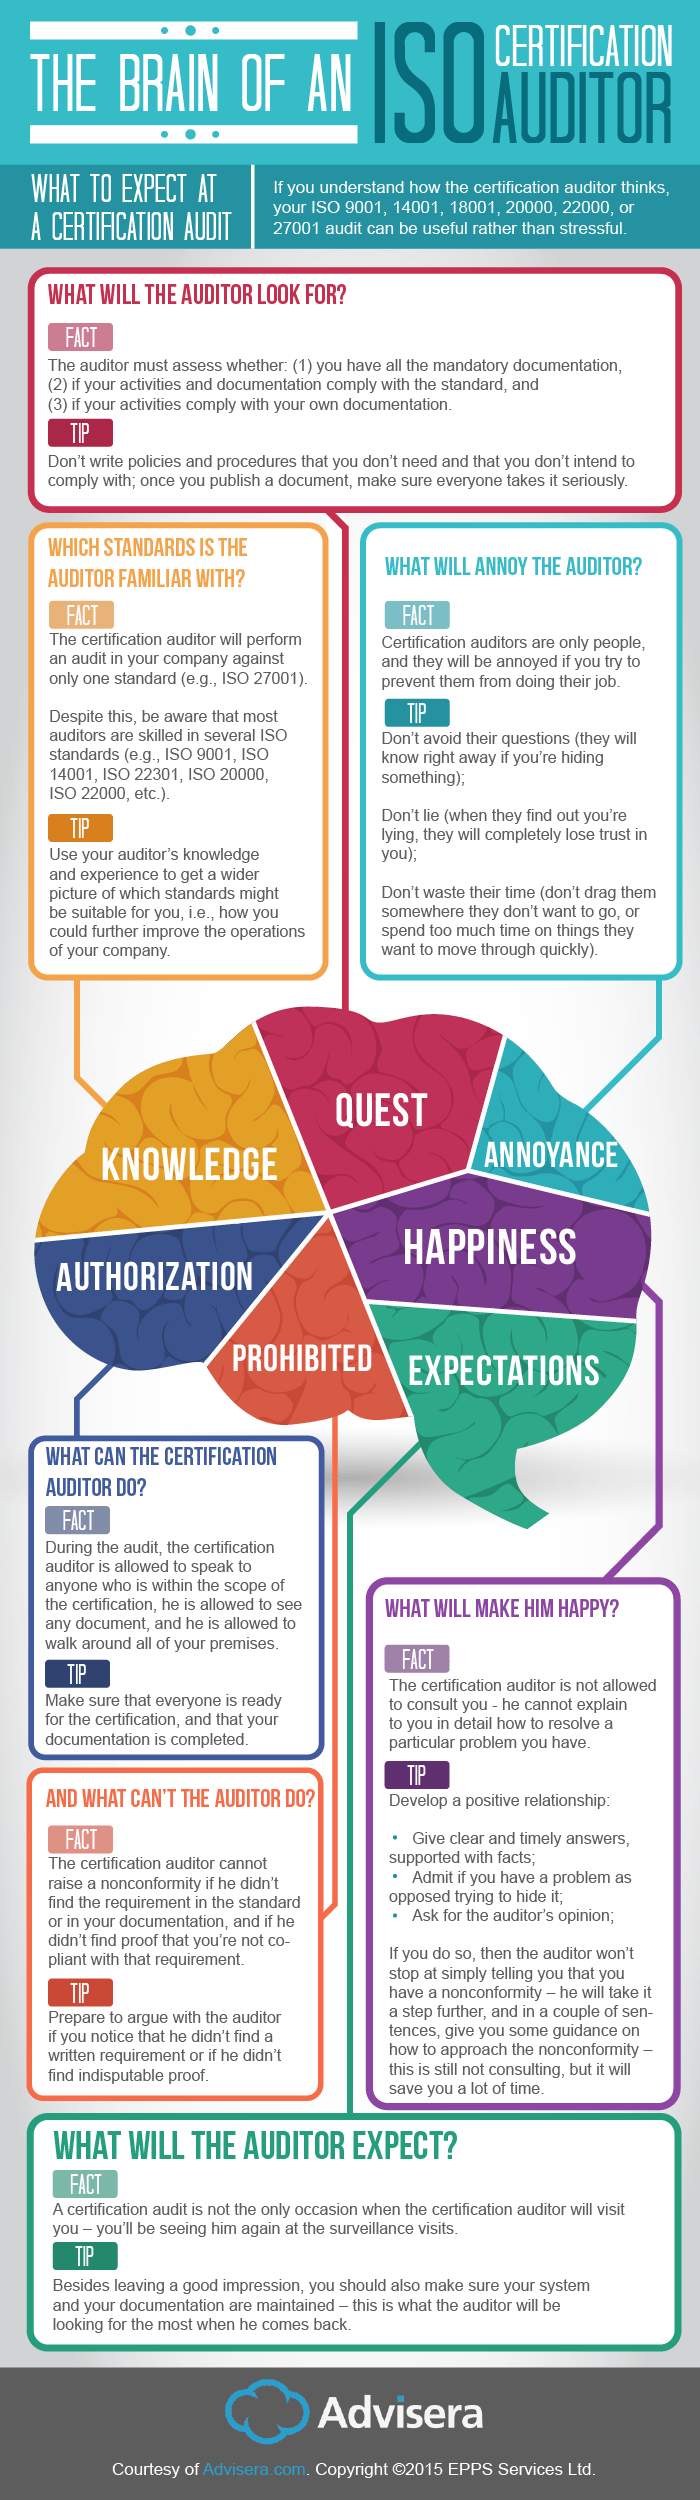 Infografic-Brain-of-an-ISO-auditor